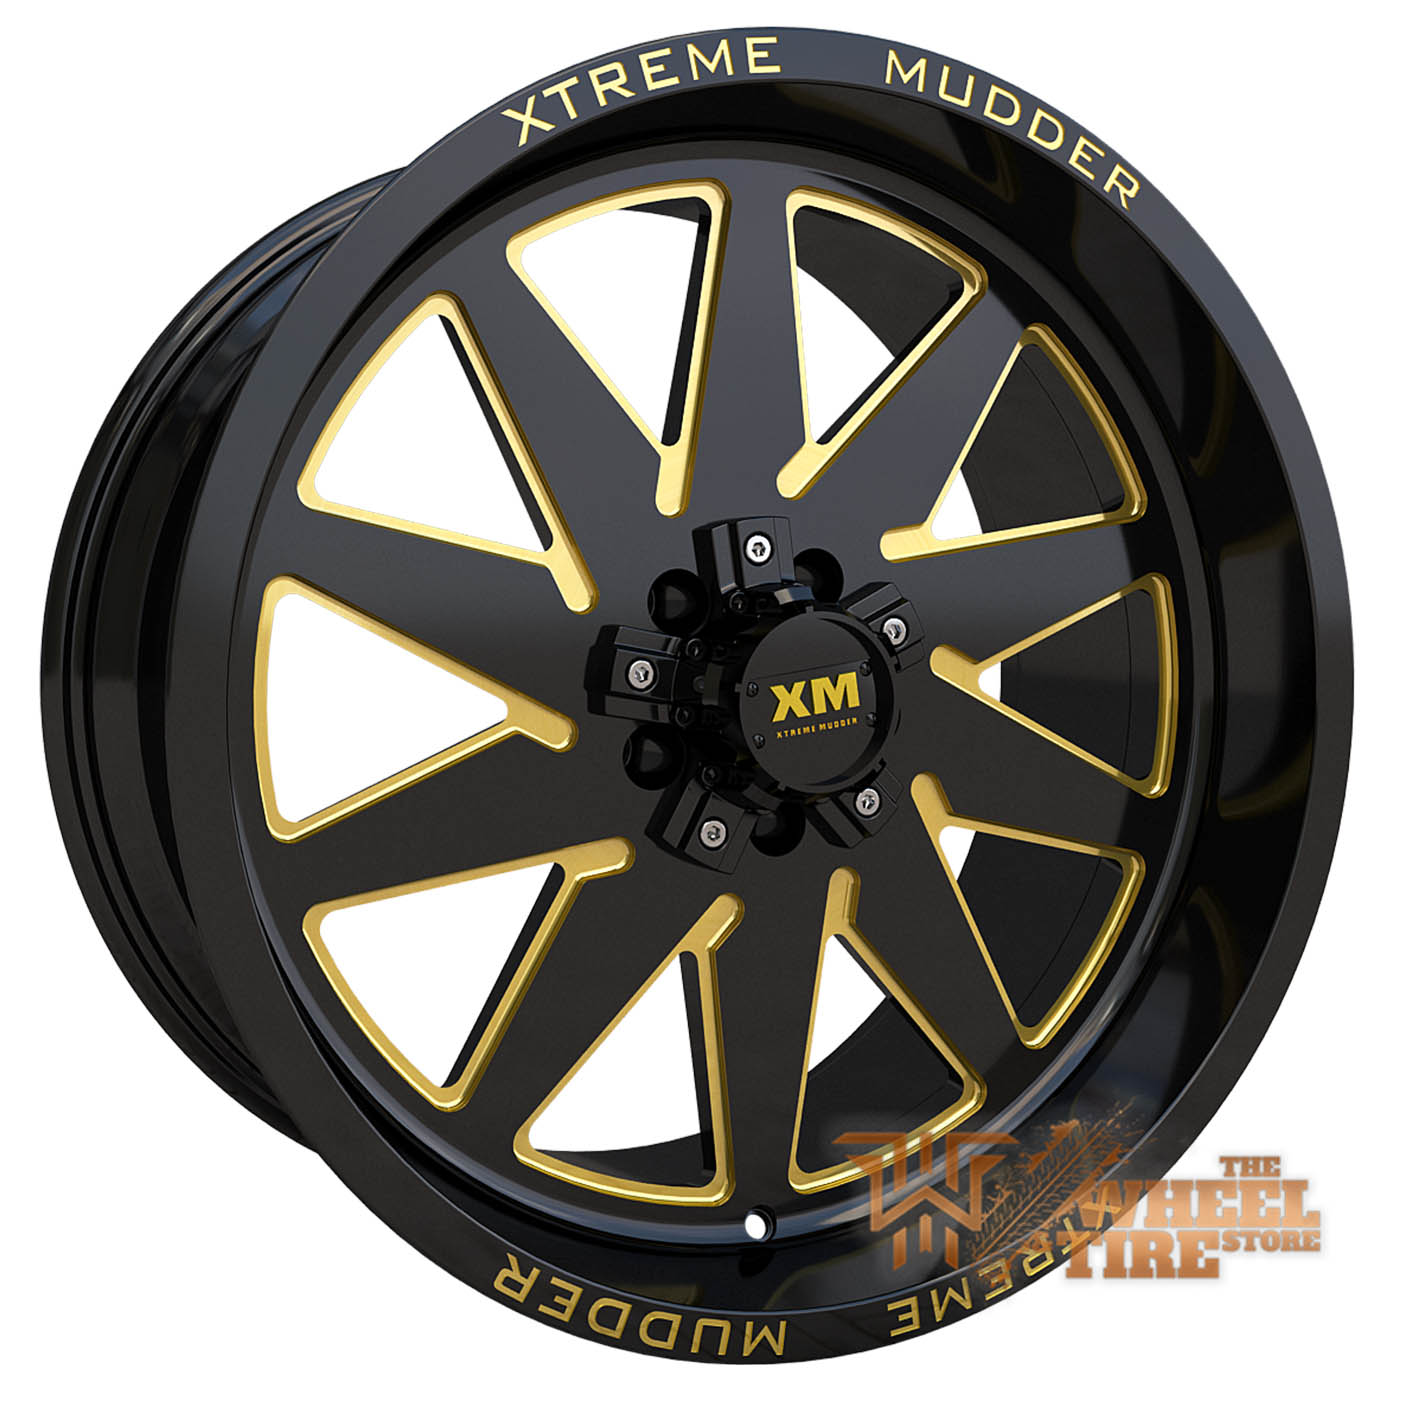 XTREME MUDDER XM-348 Wheel in Gloss Black Yellow Milled (Set of 4)